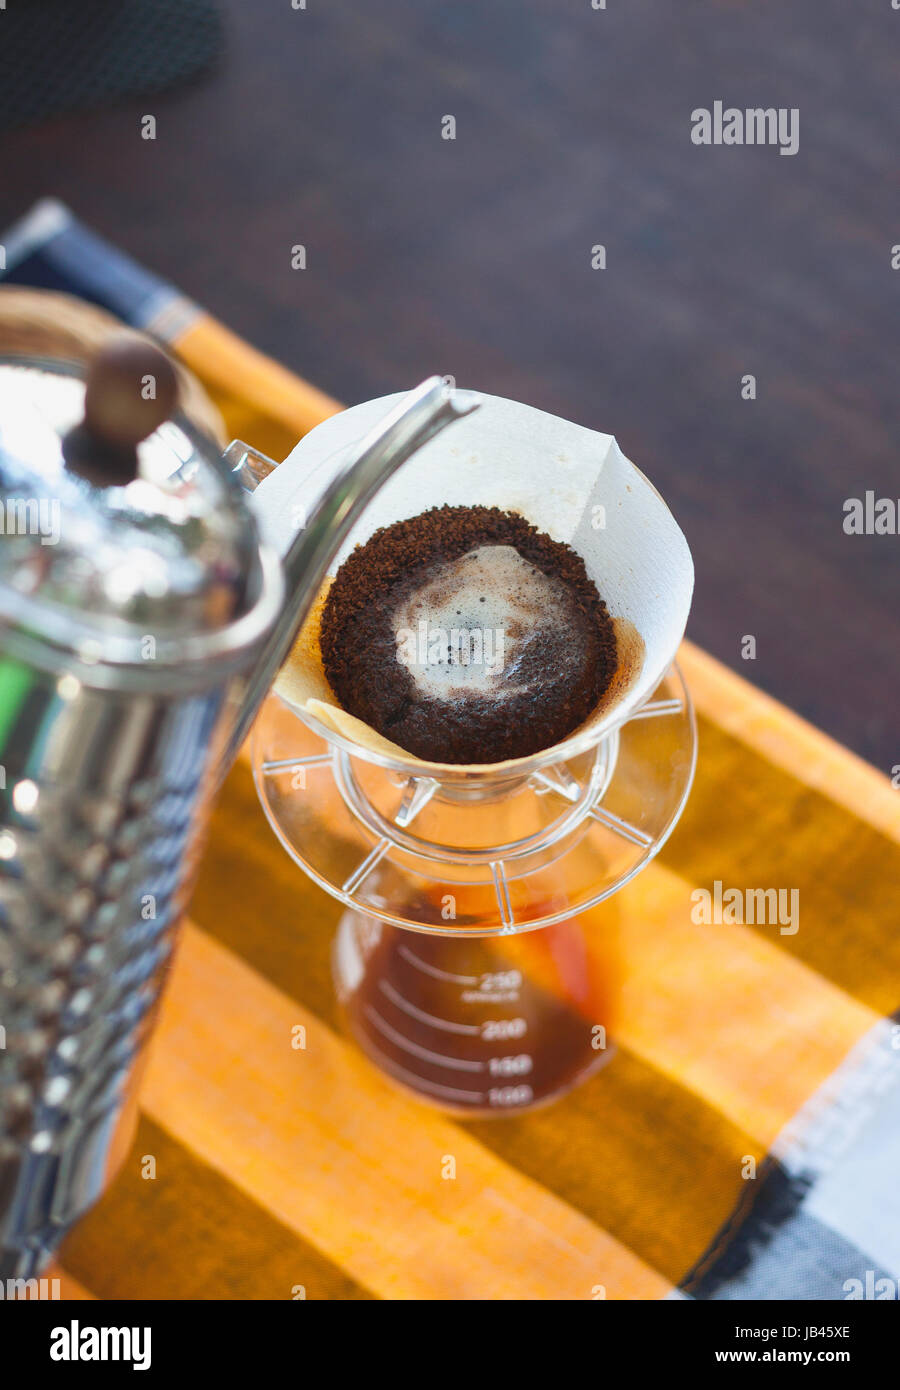 Pour Over Coffee Drip Brewing with paper filter while coffee blooming - Stock Image